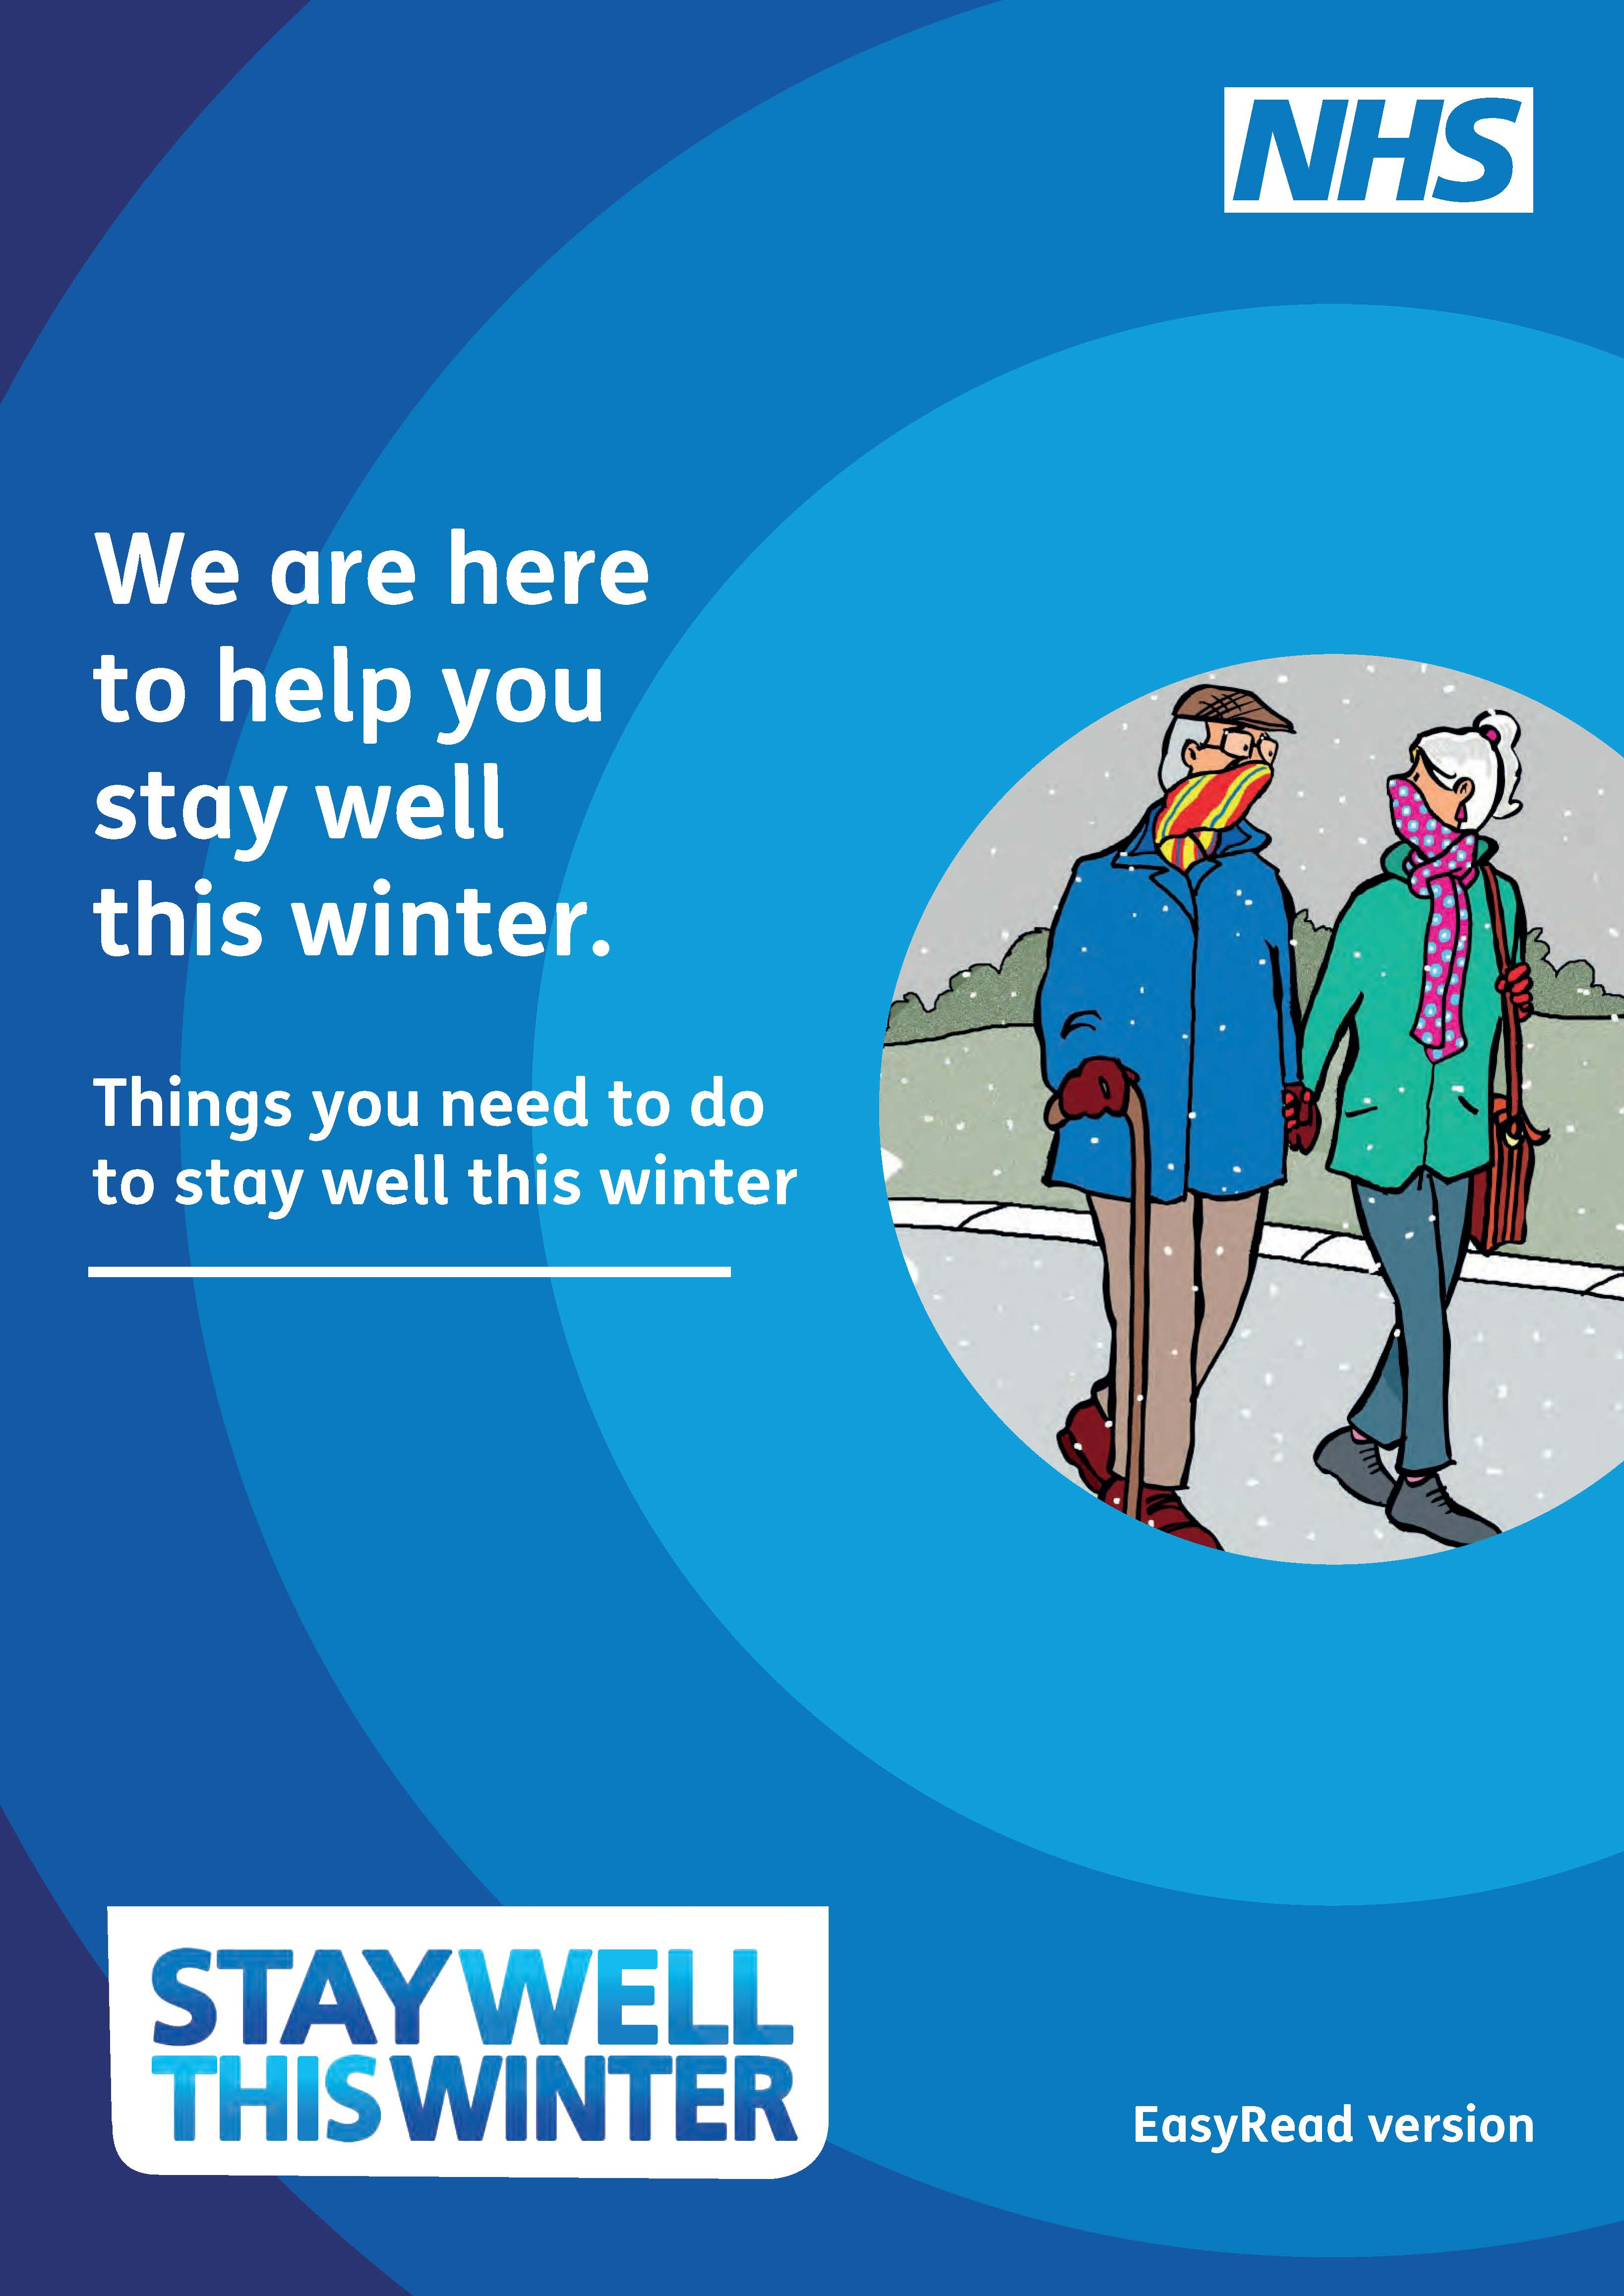 Stay well this winter easy read leaflet